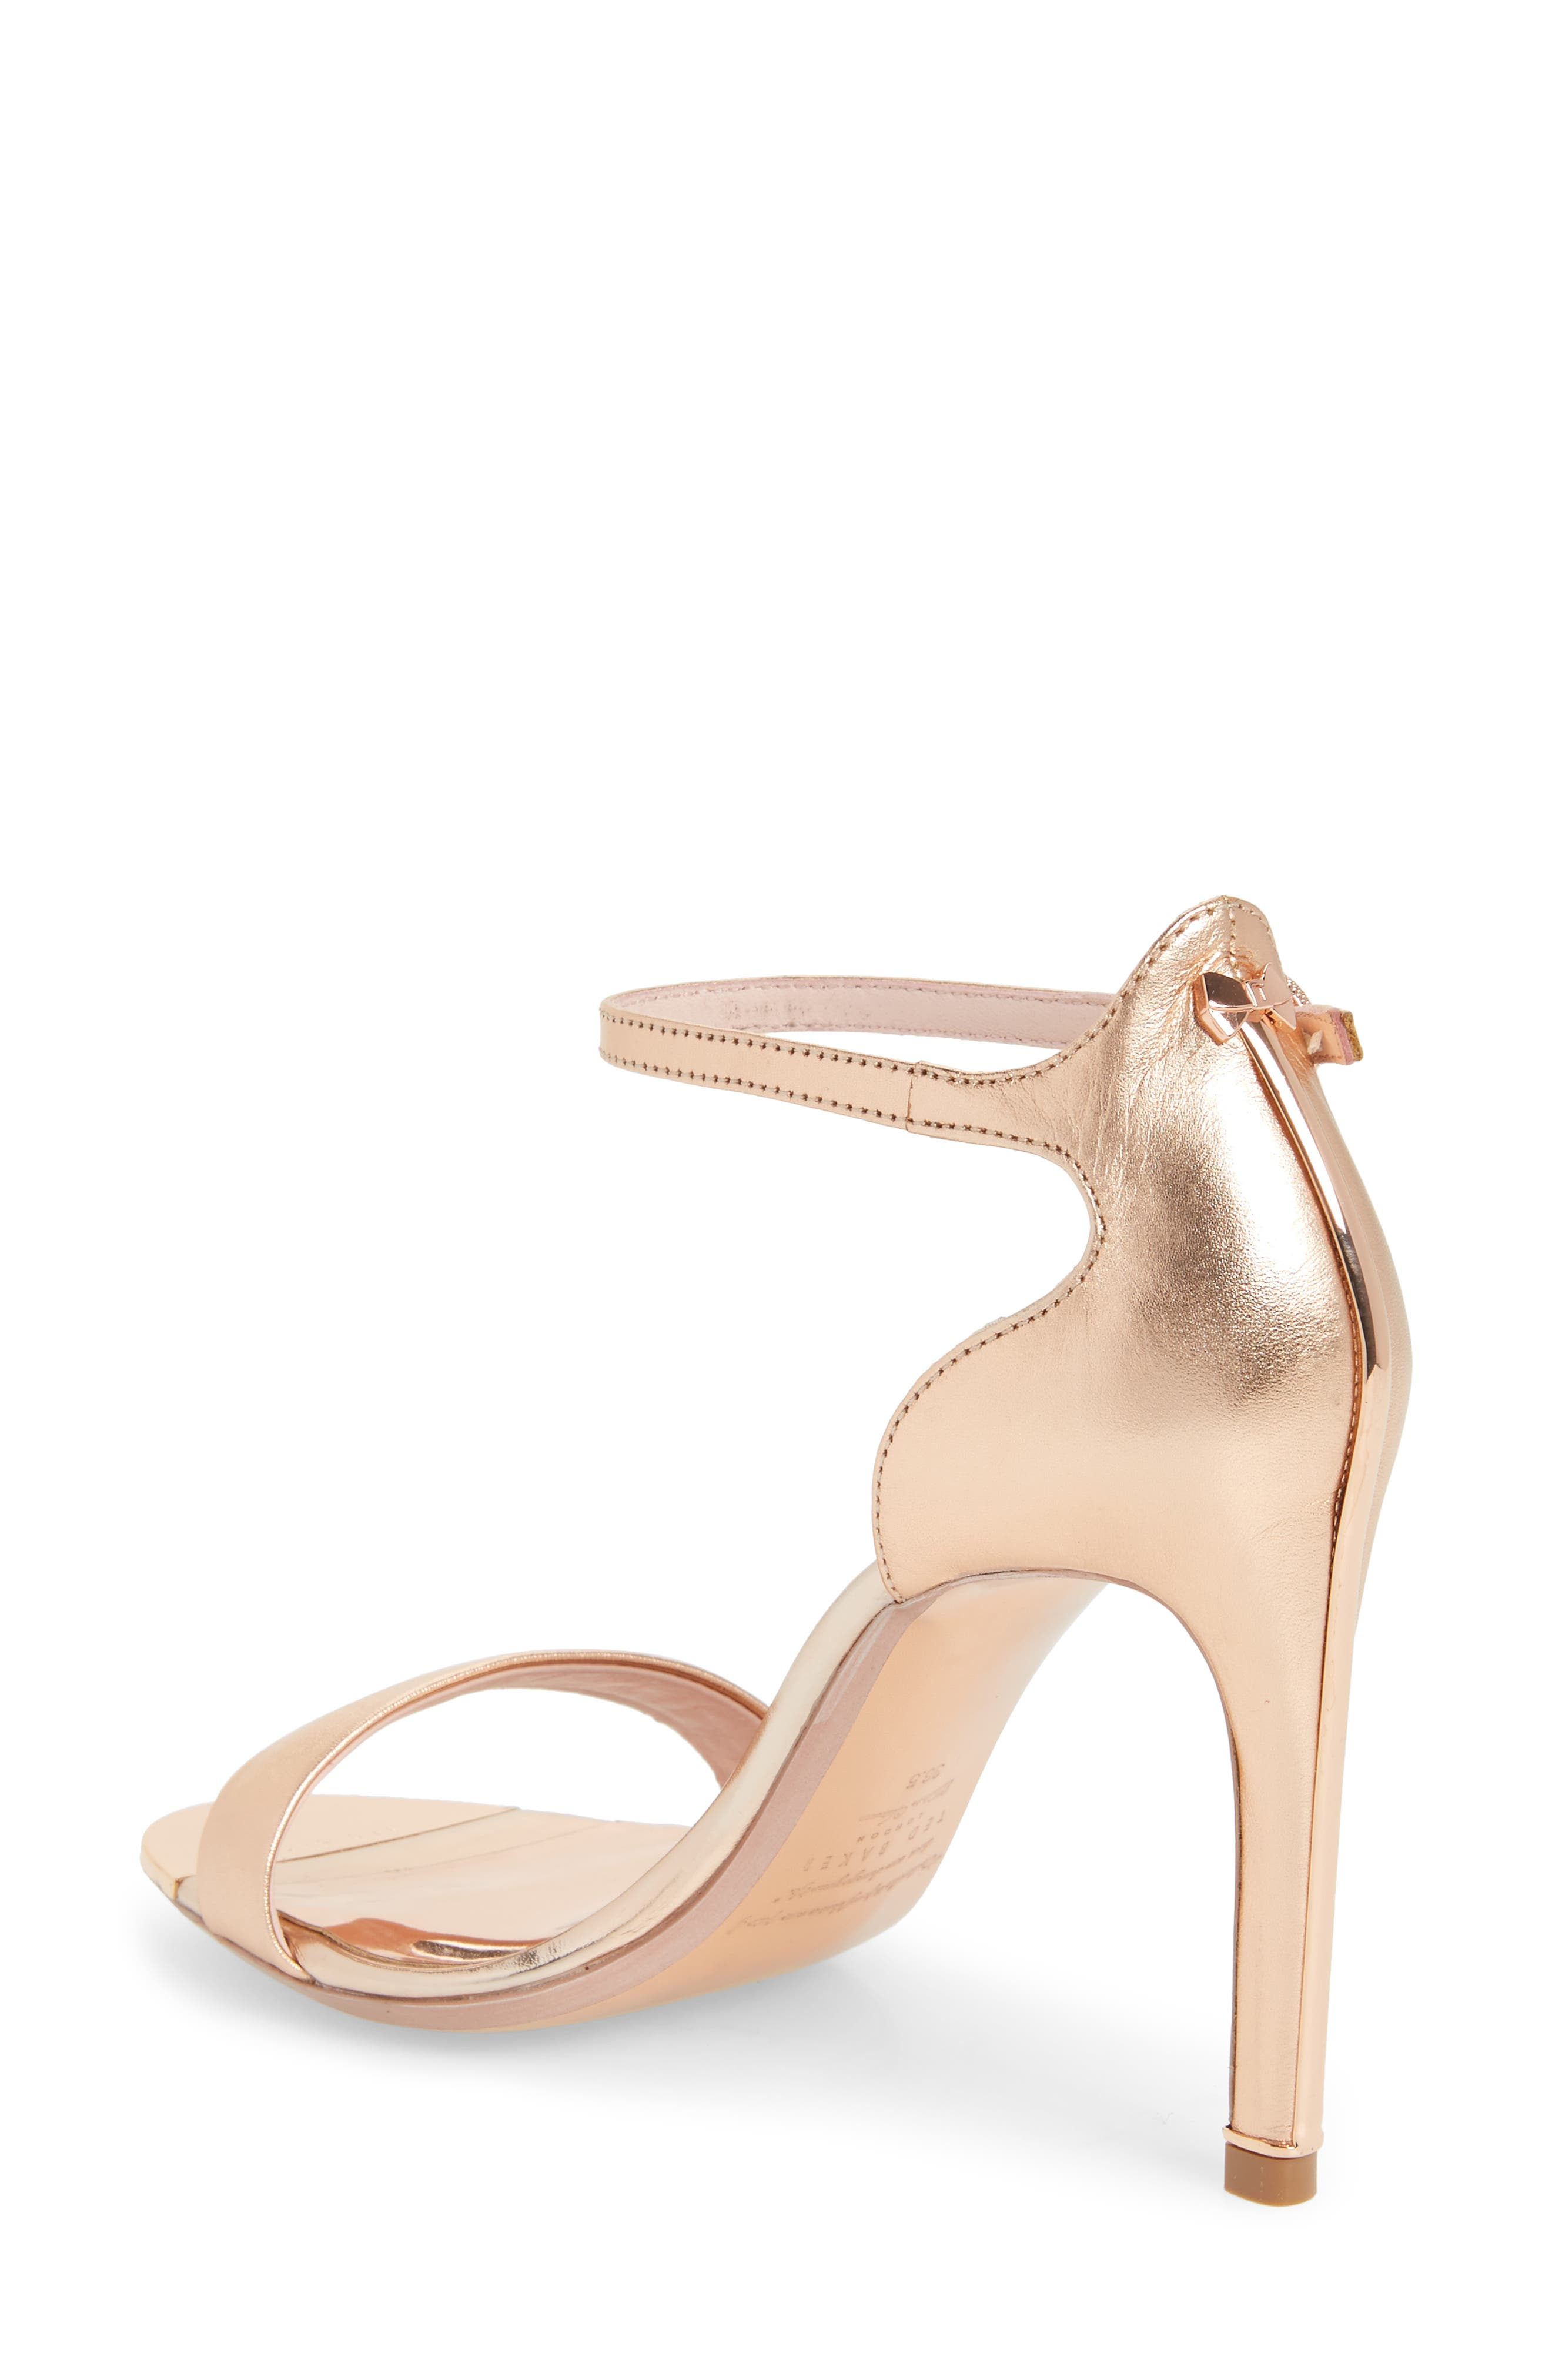 Sharlot Ankle Strap Sandal,                             Alternate thumbnail 2, color,                             Rose Gold Leather